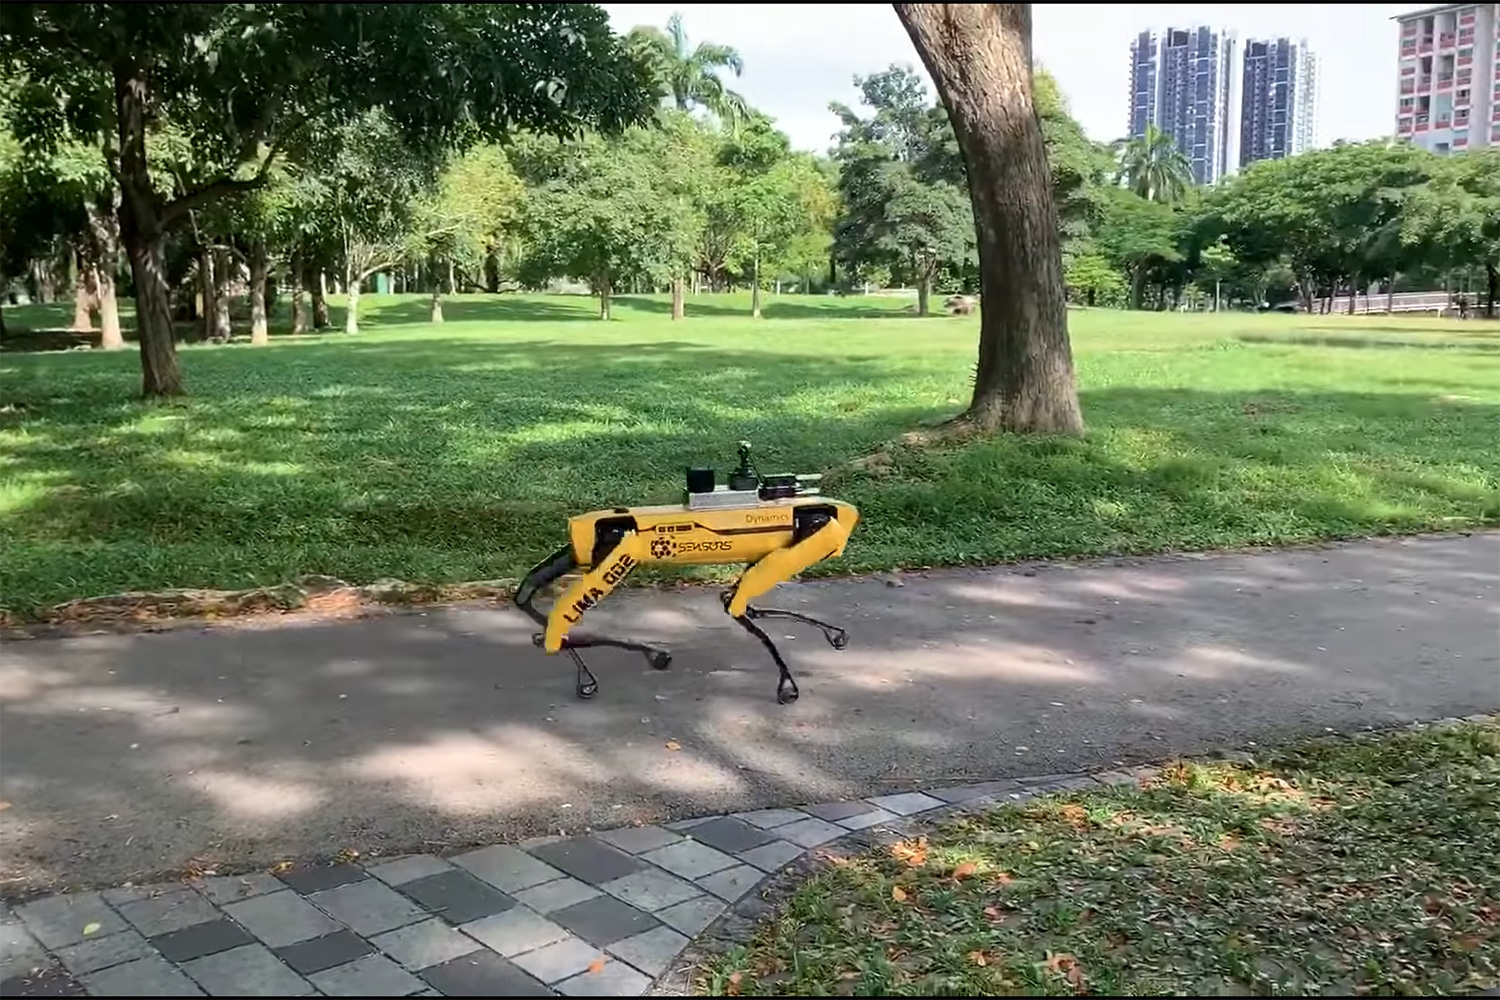 Creepy robot dogs patrol Singapore park to encourage social distancing